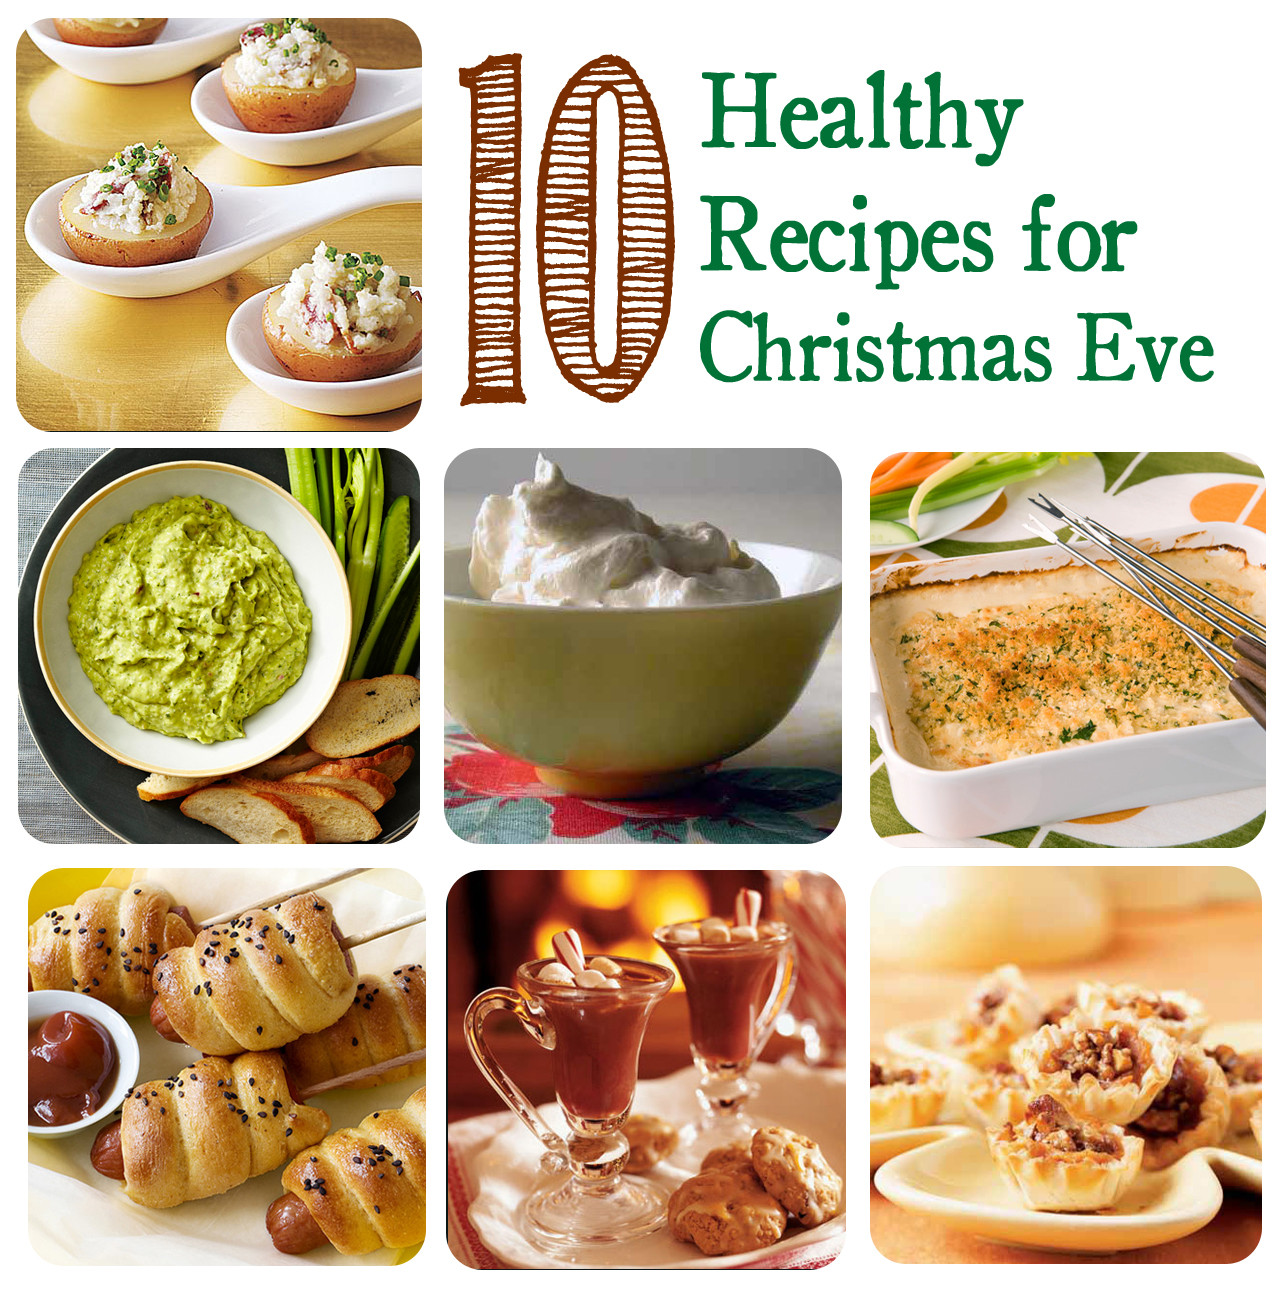 Recipe For Christmas Appetizers  My Inspired Home Christmas Eve Healthy Appetizers